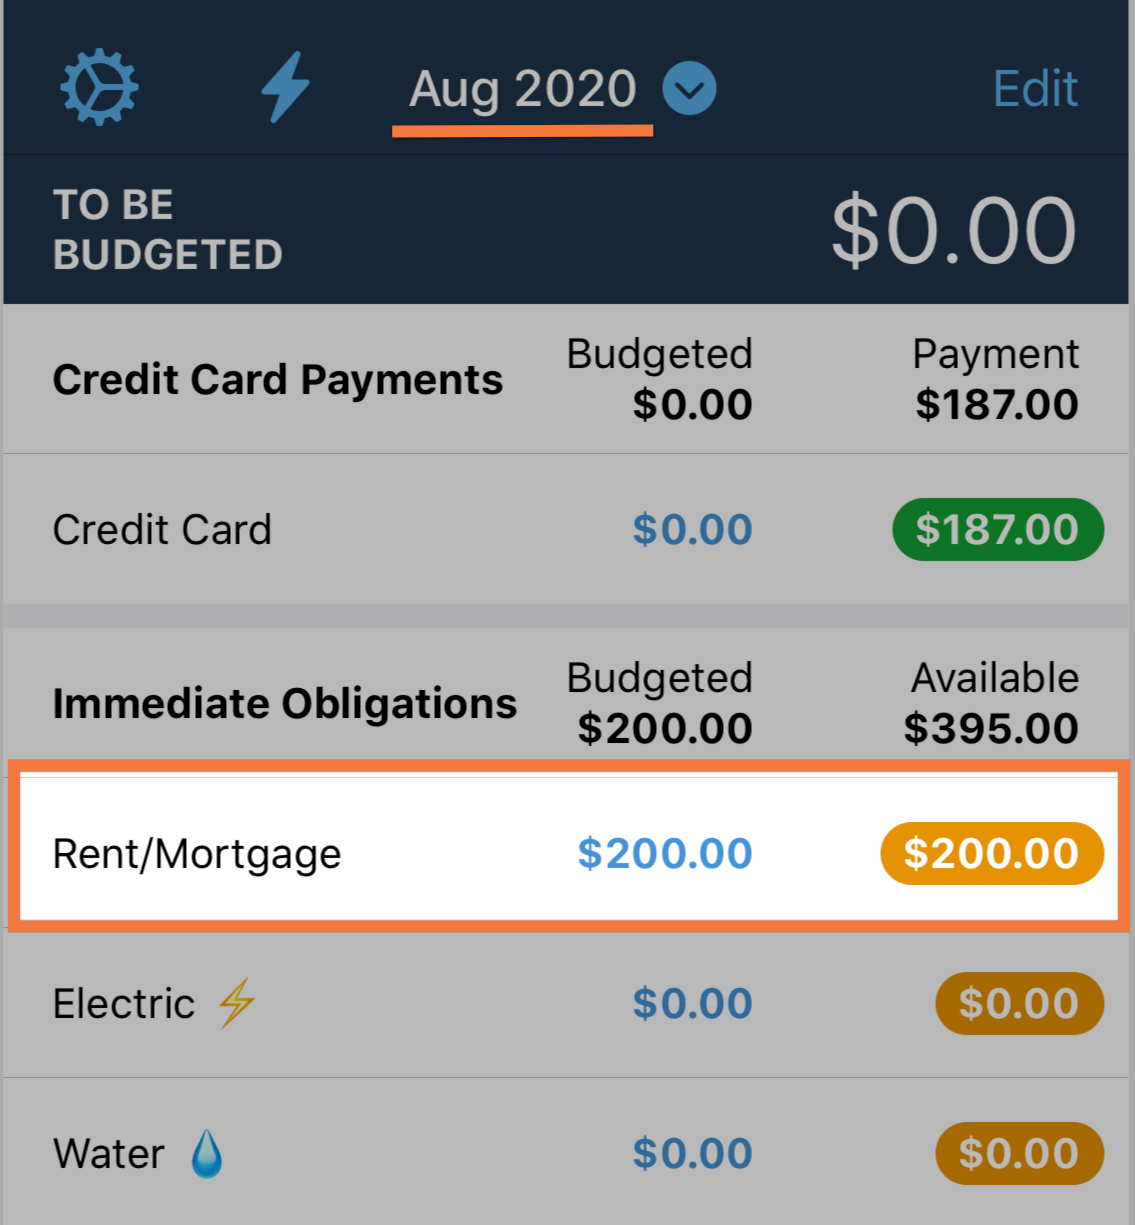 When you're in the future month, add the dollars to a category until it's zero. You've budgeted in the future month!